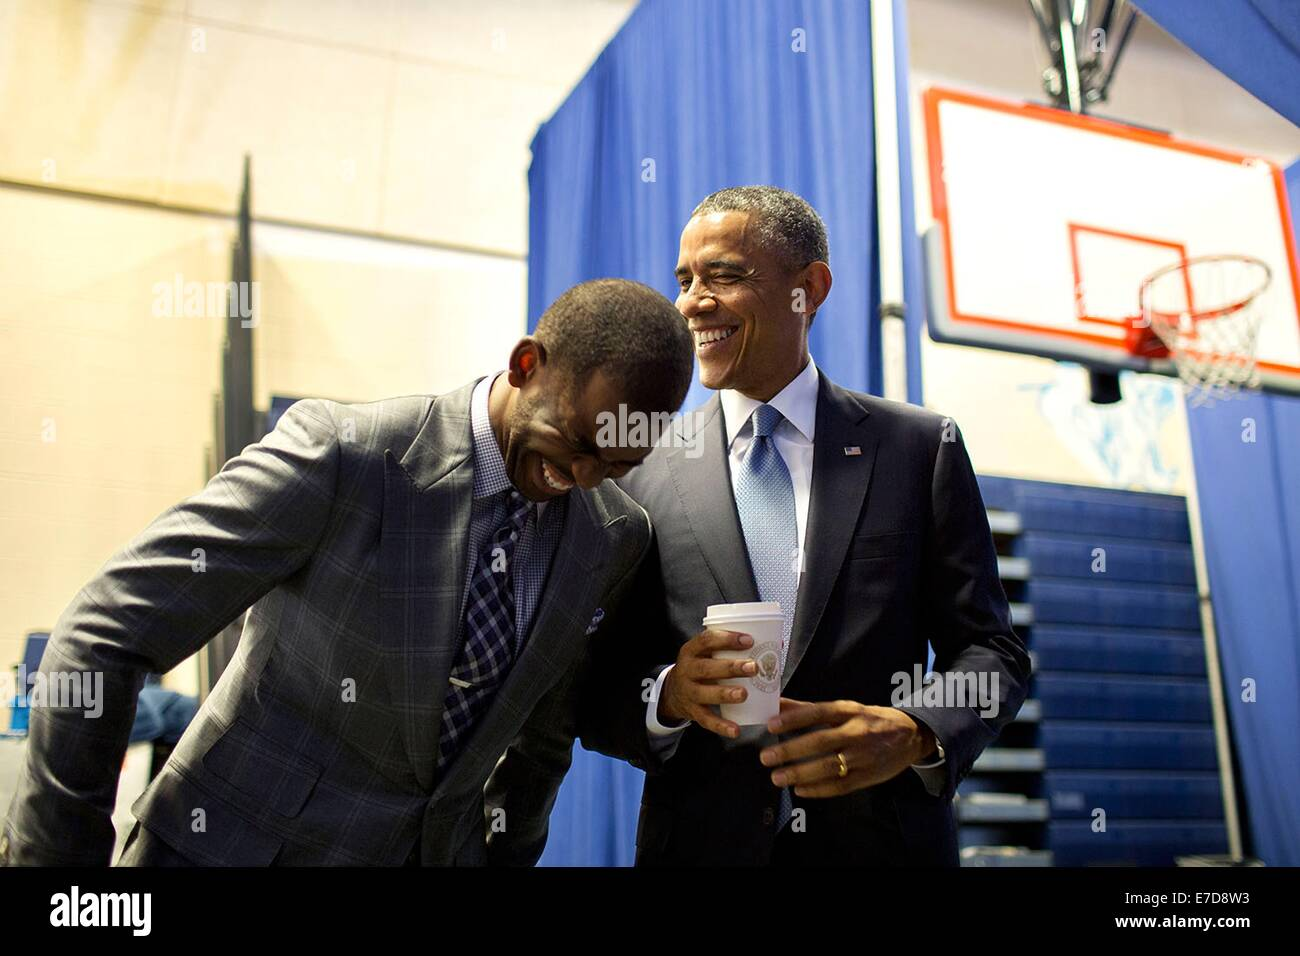 US President Barack Obama jokes with introducer Chris Paul prior to a 'My Brother's Keeper' initiative - Stock Image